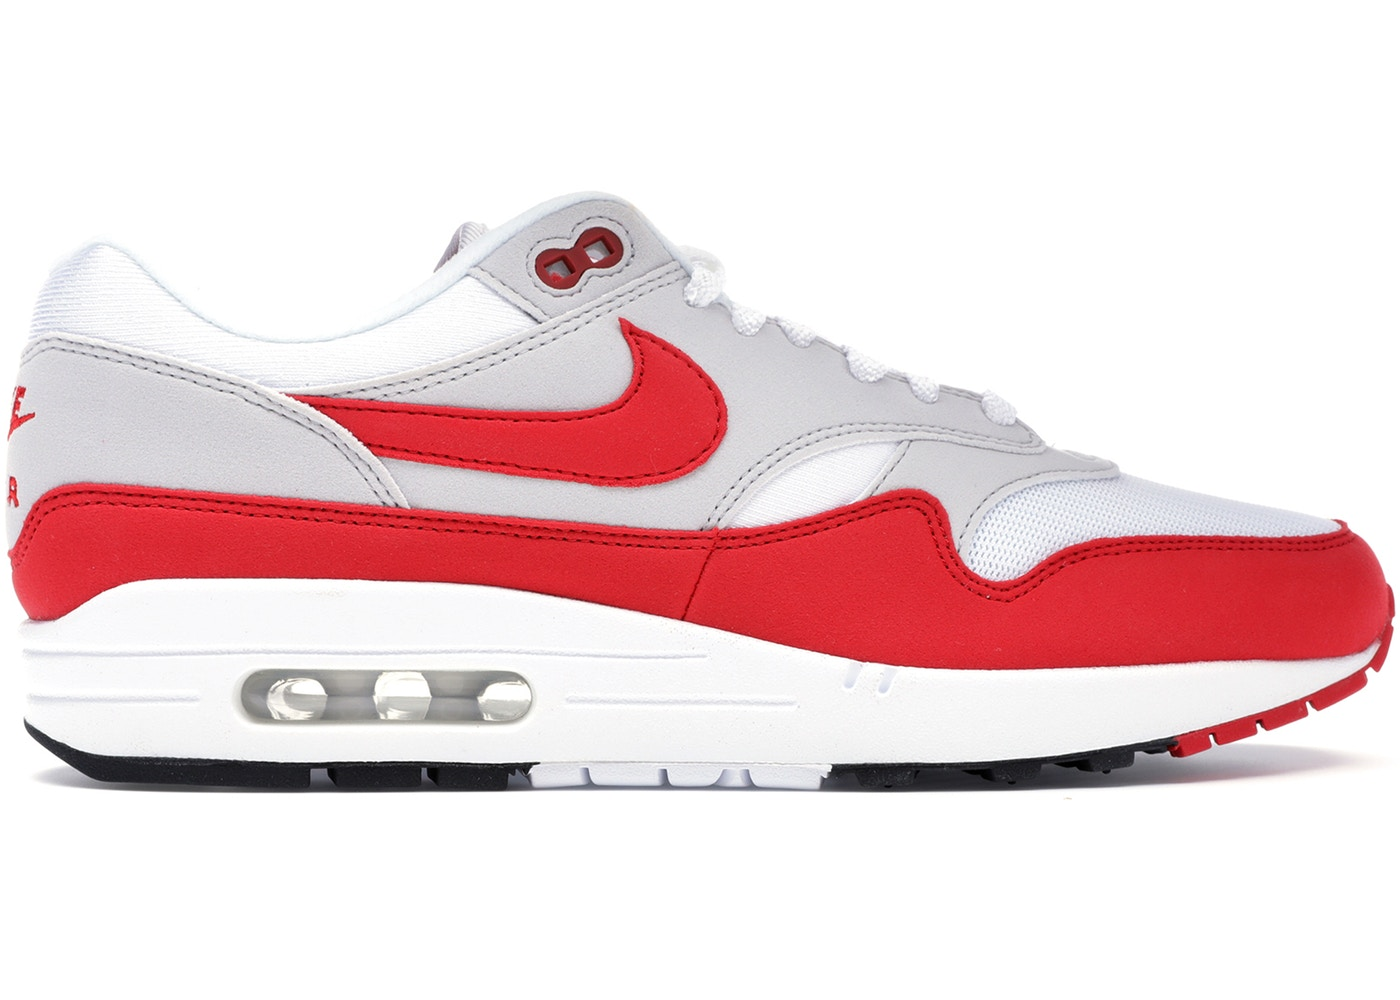 best website 26459 86a0c Restock: Nike Air Max 1 OG Anniversary